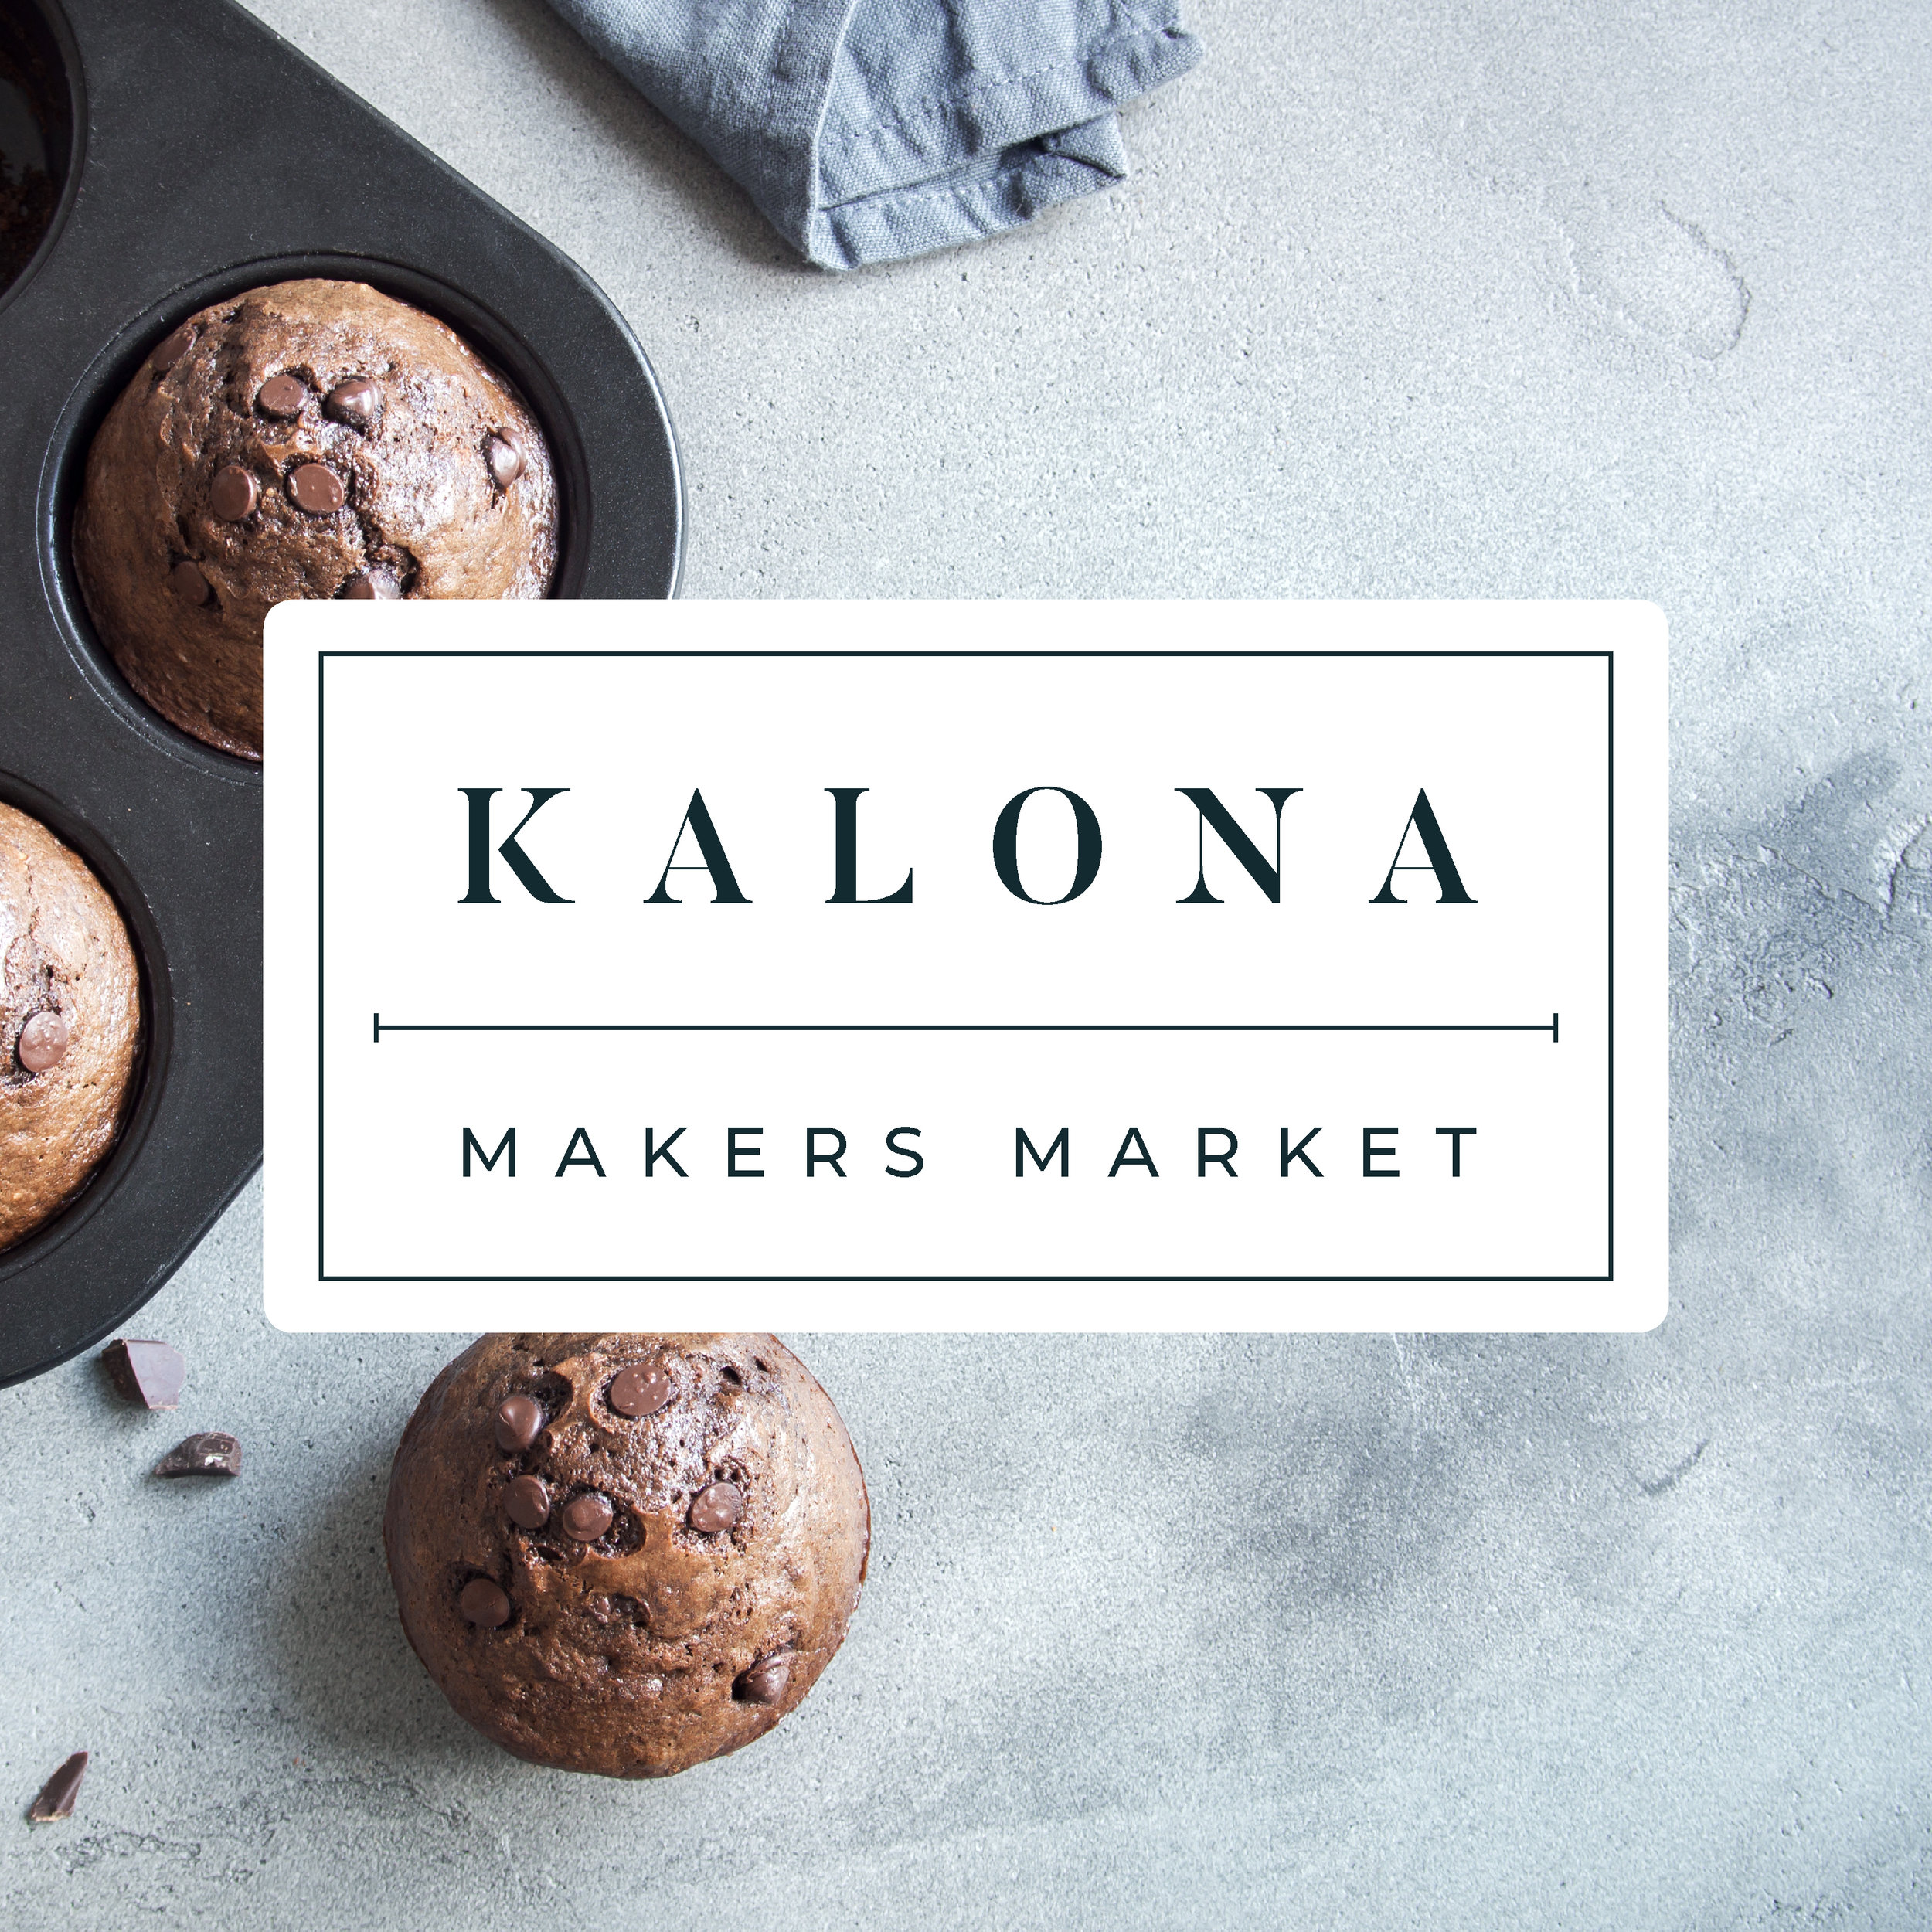 Kalona Makers Market -  branding and social media